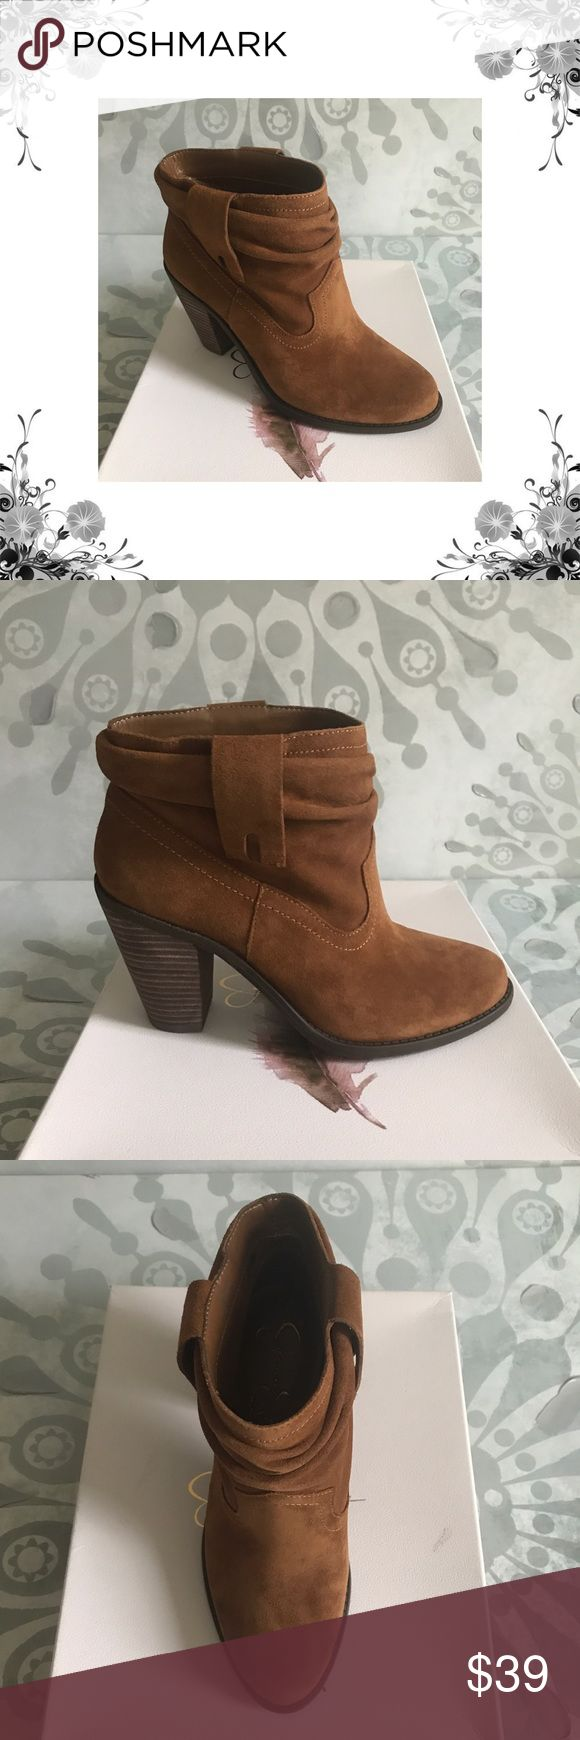 """Jessica Simpson 'Chantie' Brown Booties Manufacturer Color is Canela Brown. New with box. Heel Height is approx 3 3/4"""".  Platform Height is approx 1/4"""". Shaft Height is approx 4 3/4"""". Shaft Width is approx 12"""". Pull On Closure. Material is Leather Upper/Man Made Outsole. Fabric Type is Suede. Bundle for discounts! Thank you for shopping my closet! Jessica Simpson Shoes Ankle Boots & Booties"""